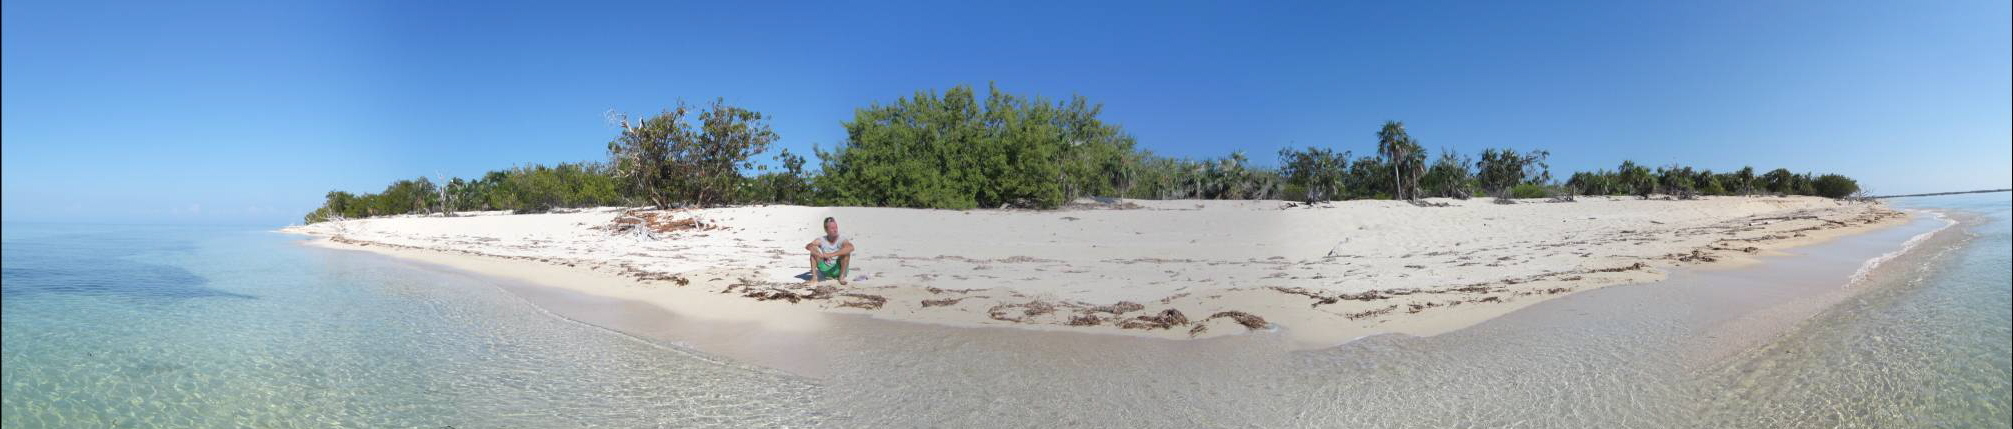 Cayo Anclitas - unsere Insel!